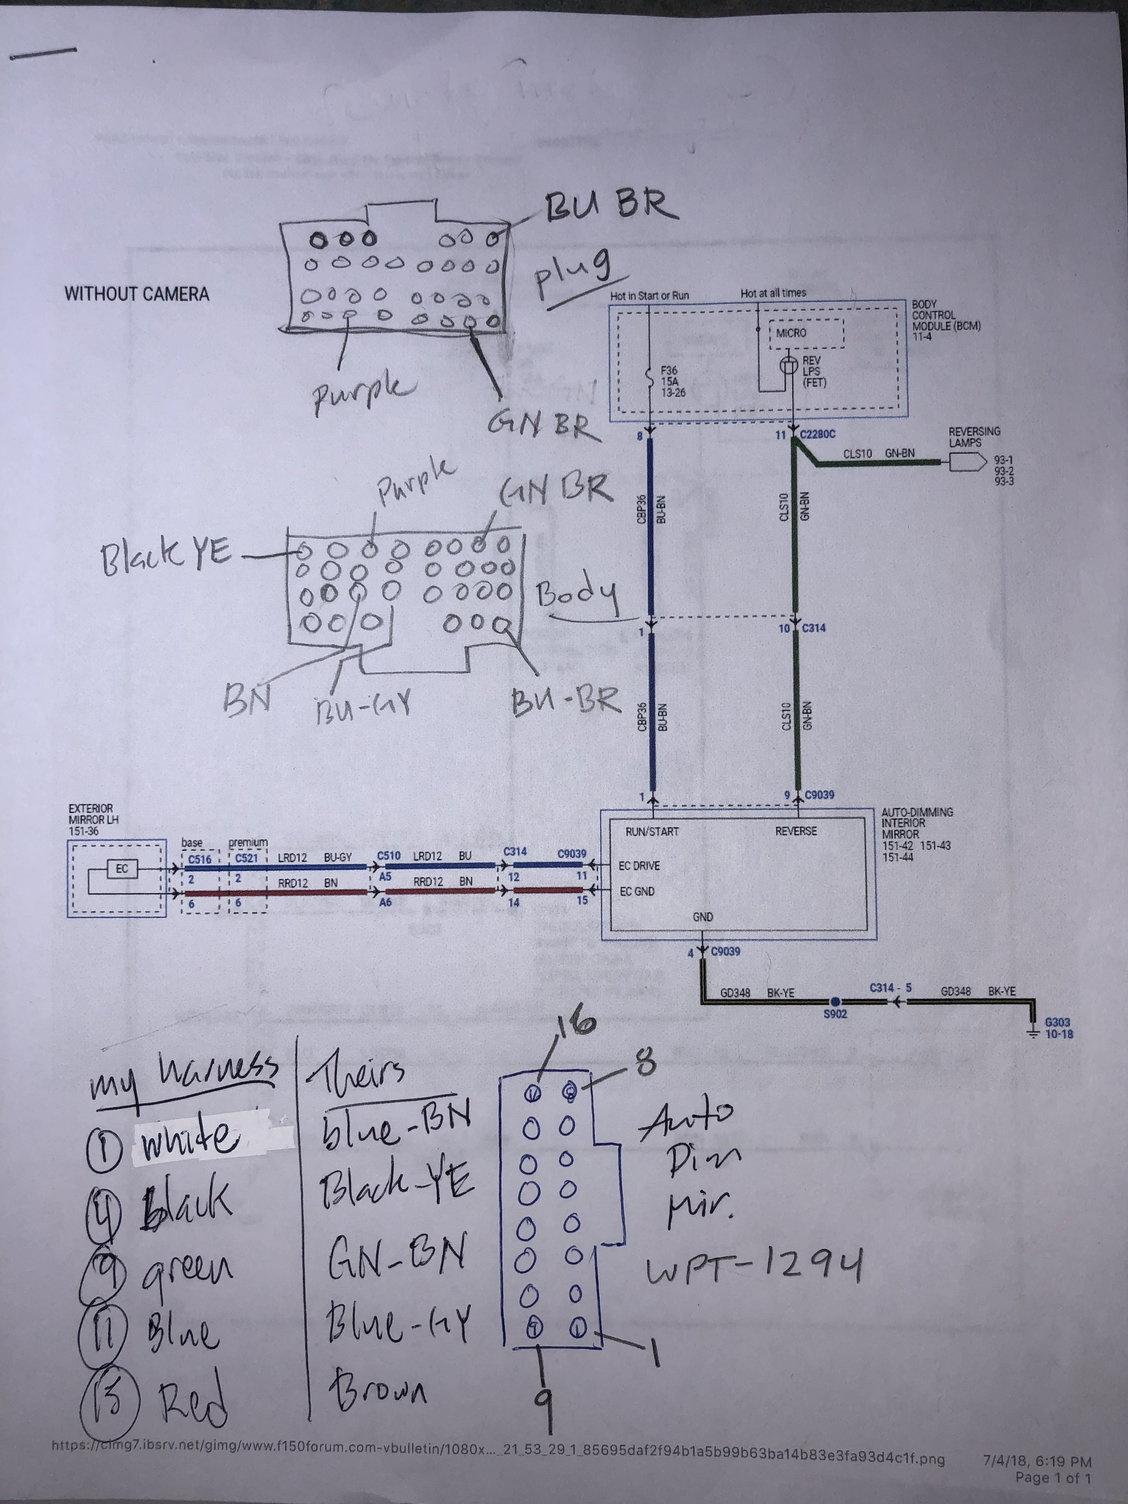 hight resolution of my notes not clean but has all the info for my truck 2018 xl the wiring diagrams are for a 2017 since they haven t released to new drawings yet